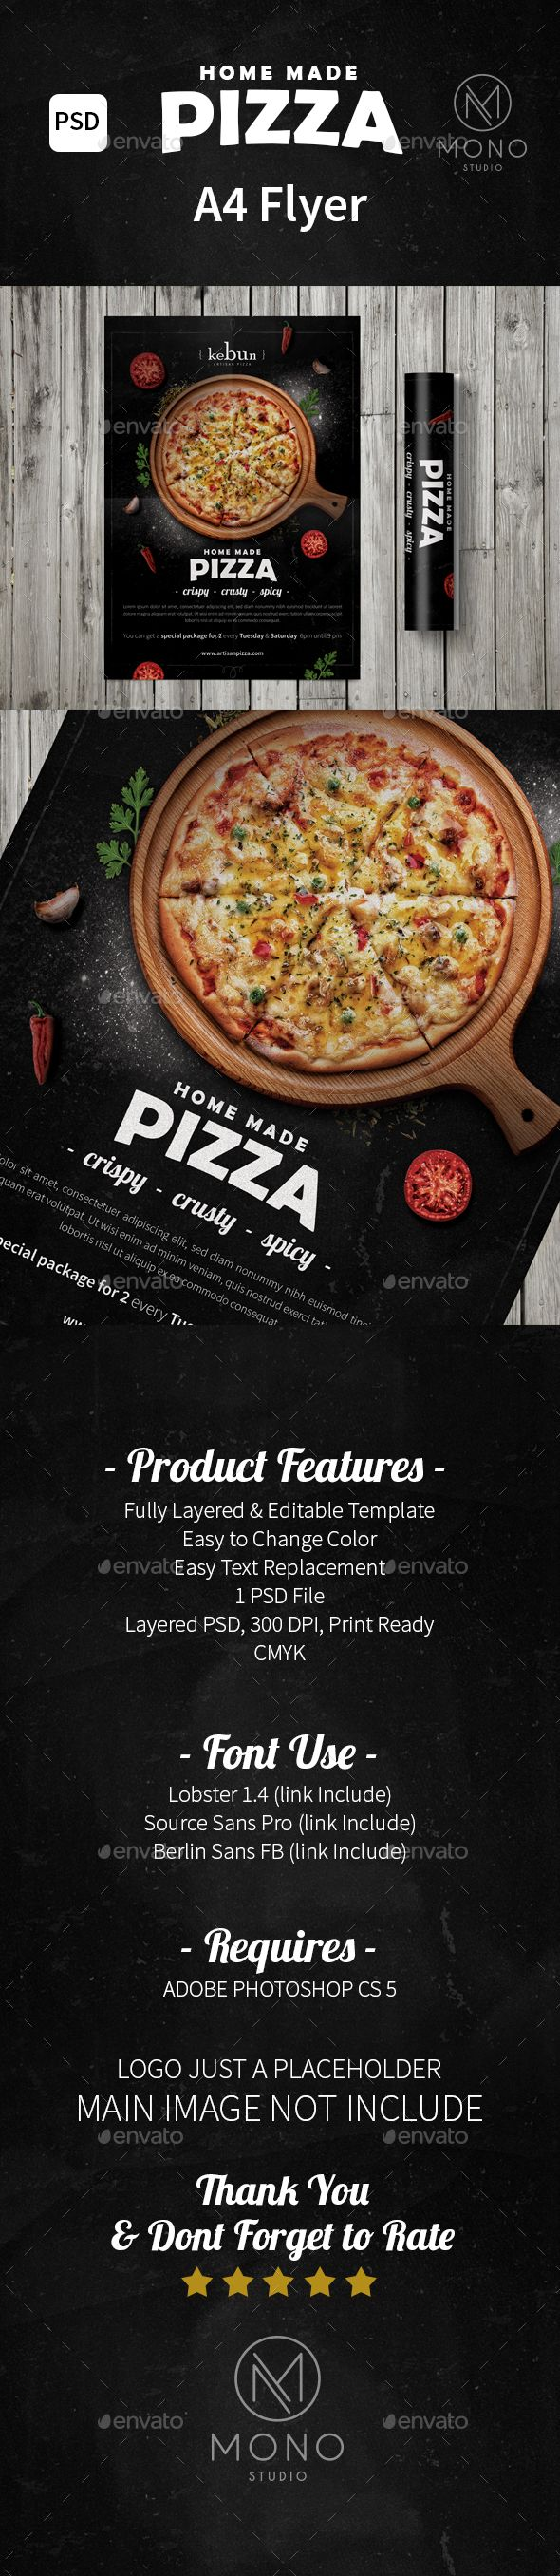 #Pizza Flyer - Restaurant #Flyers Download here: https://graphicriver.net/item/pizza-flyer/15786727?ref=alena994